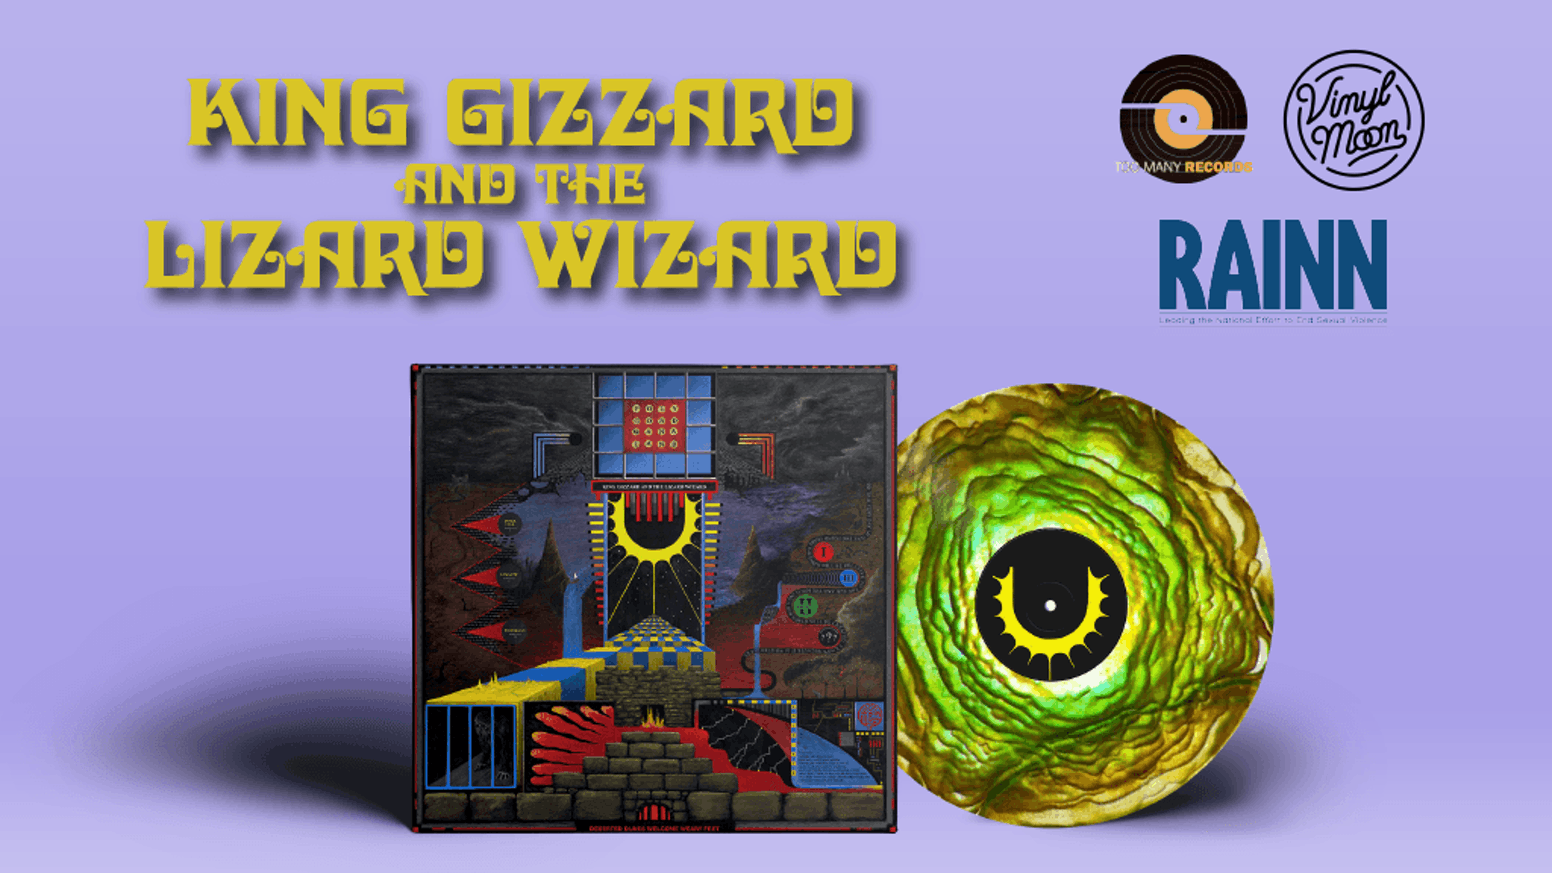 """Deluxe vinyl pressing of King Gizzard & The Lizard Wizard's new LP """"Polygondwanaland"""". Quality from Vinyl Moon. All profits to charity."""